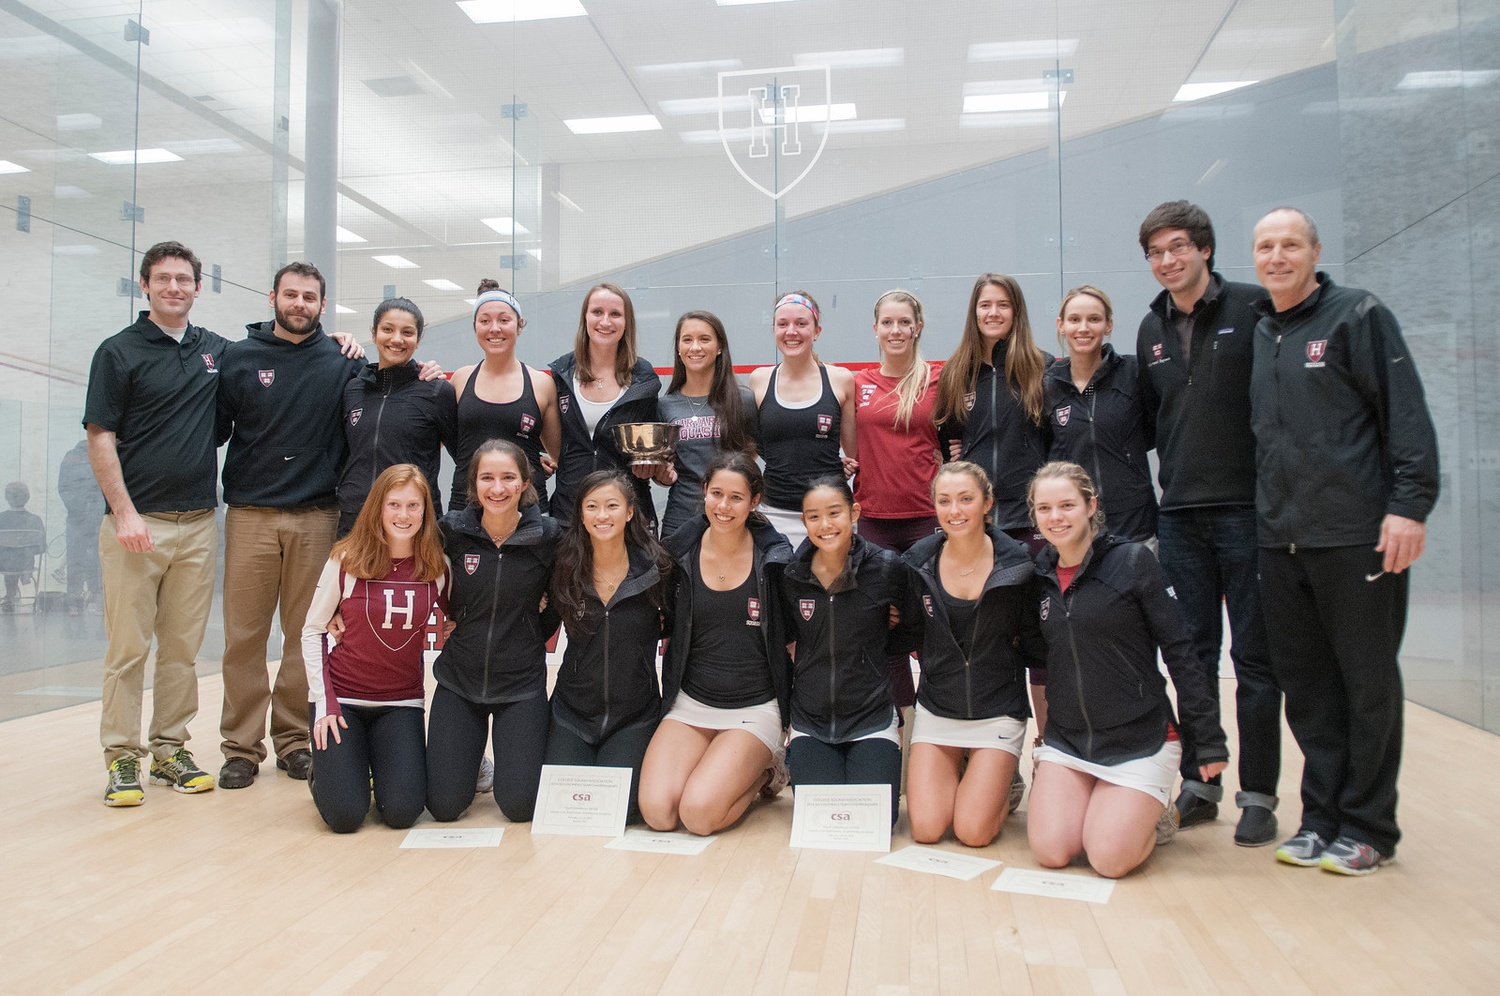 Amanda Sobhy '15 and Haley Mendez '15, back row fourth from the left and back row fifth from the left, respectively, pose after capturing the 2015 National Championship. While not a member of the 2015 squad, and thus not pictured, Sabrina Sobhy '19 would go on to capture four national championships in her four years with the Crimson.